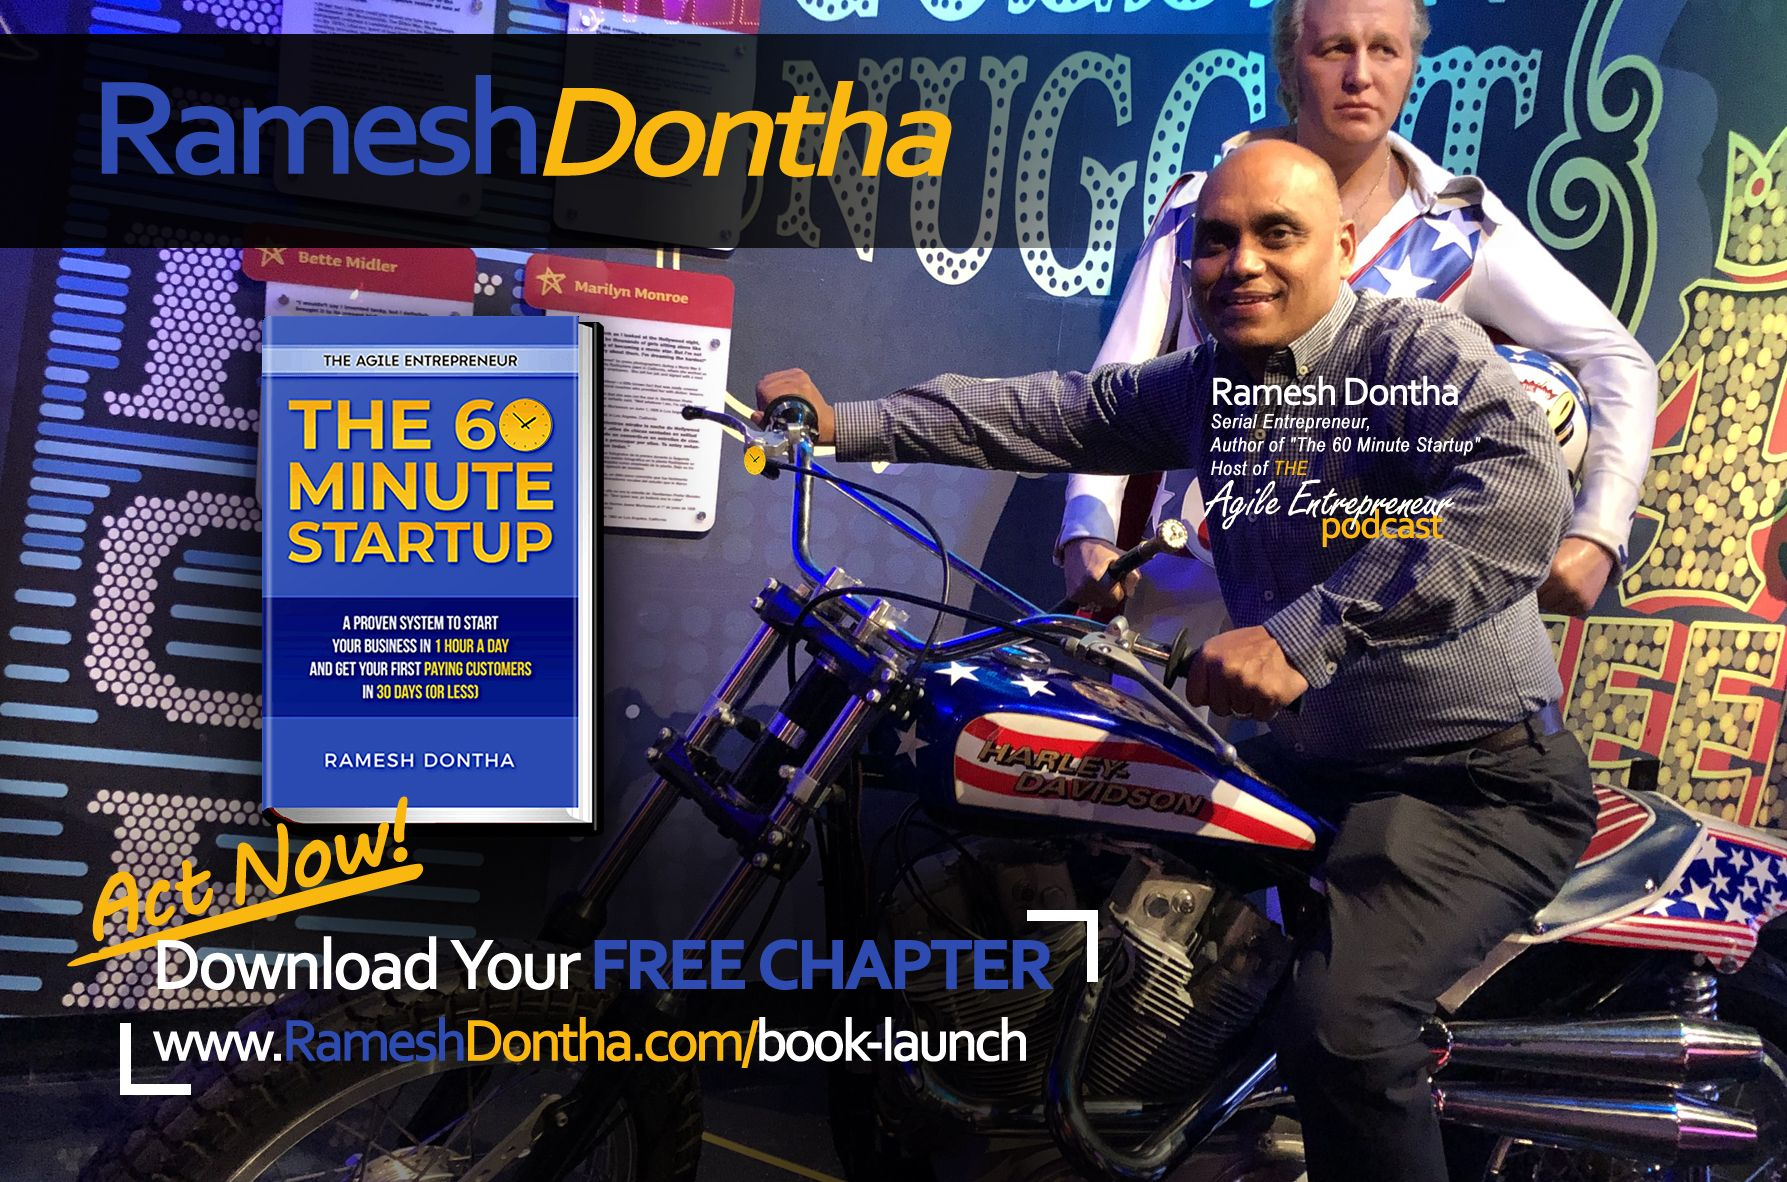 Ramesh Dontha - Start a Business in 30 Days